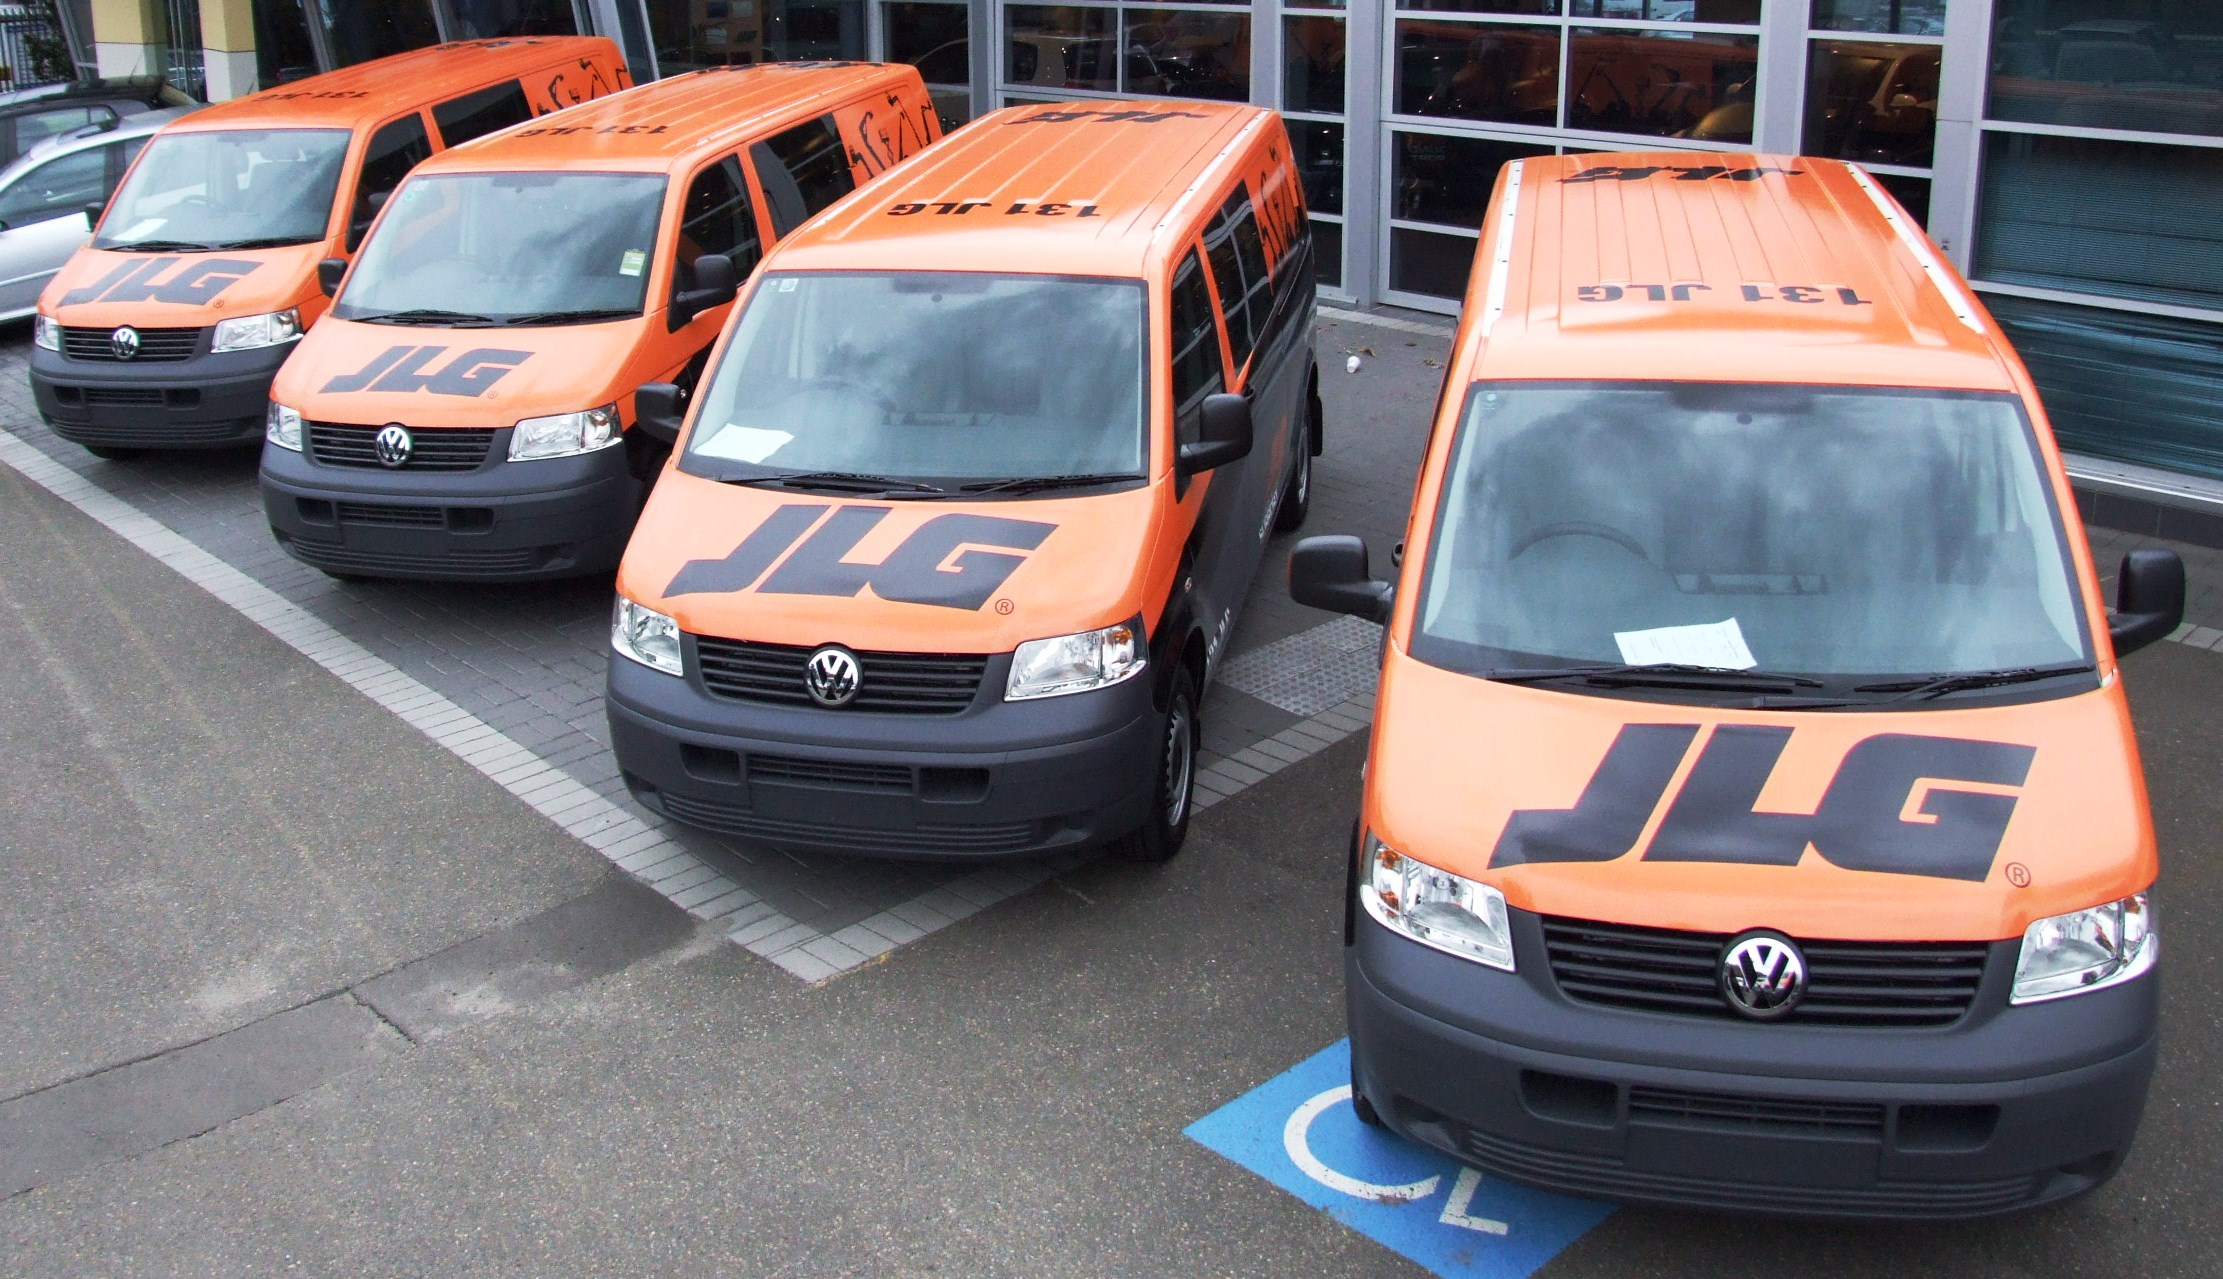 Fleet graphics. Vehicle graphics. JLG VW service vans. Four in a row.